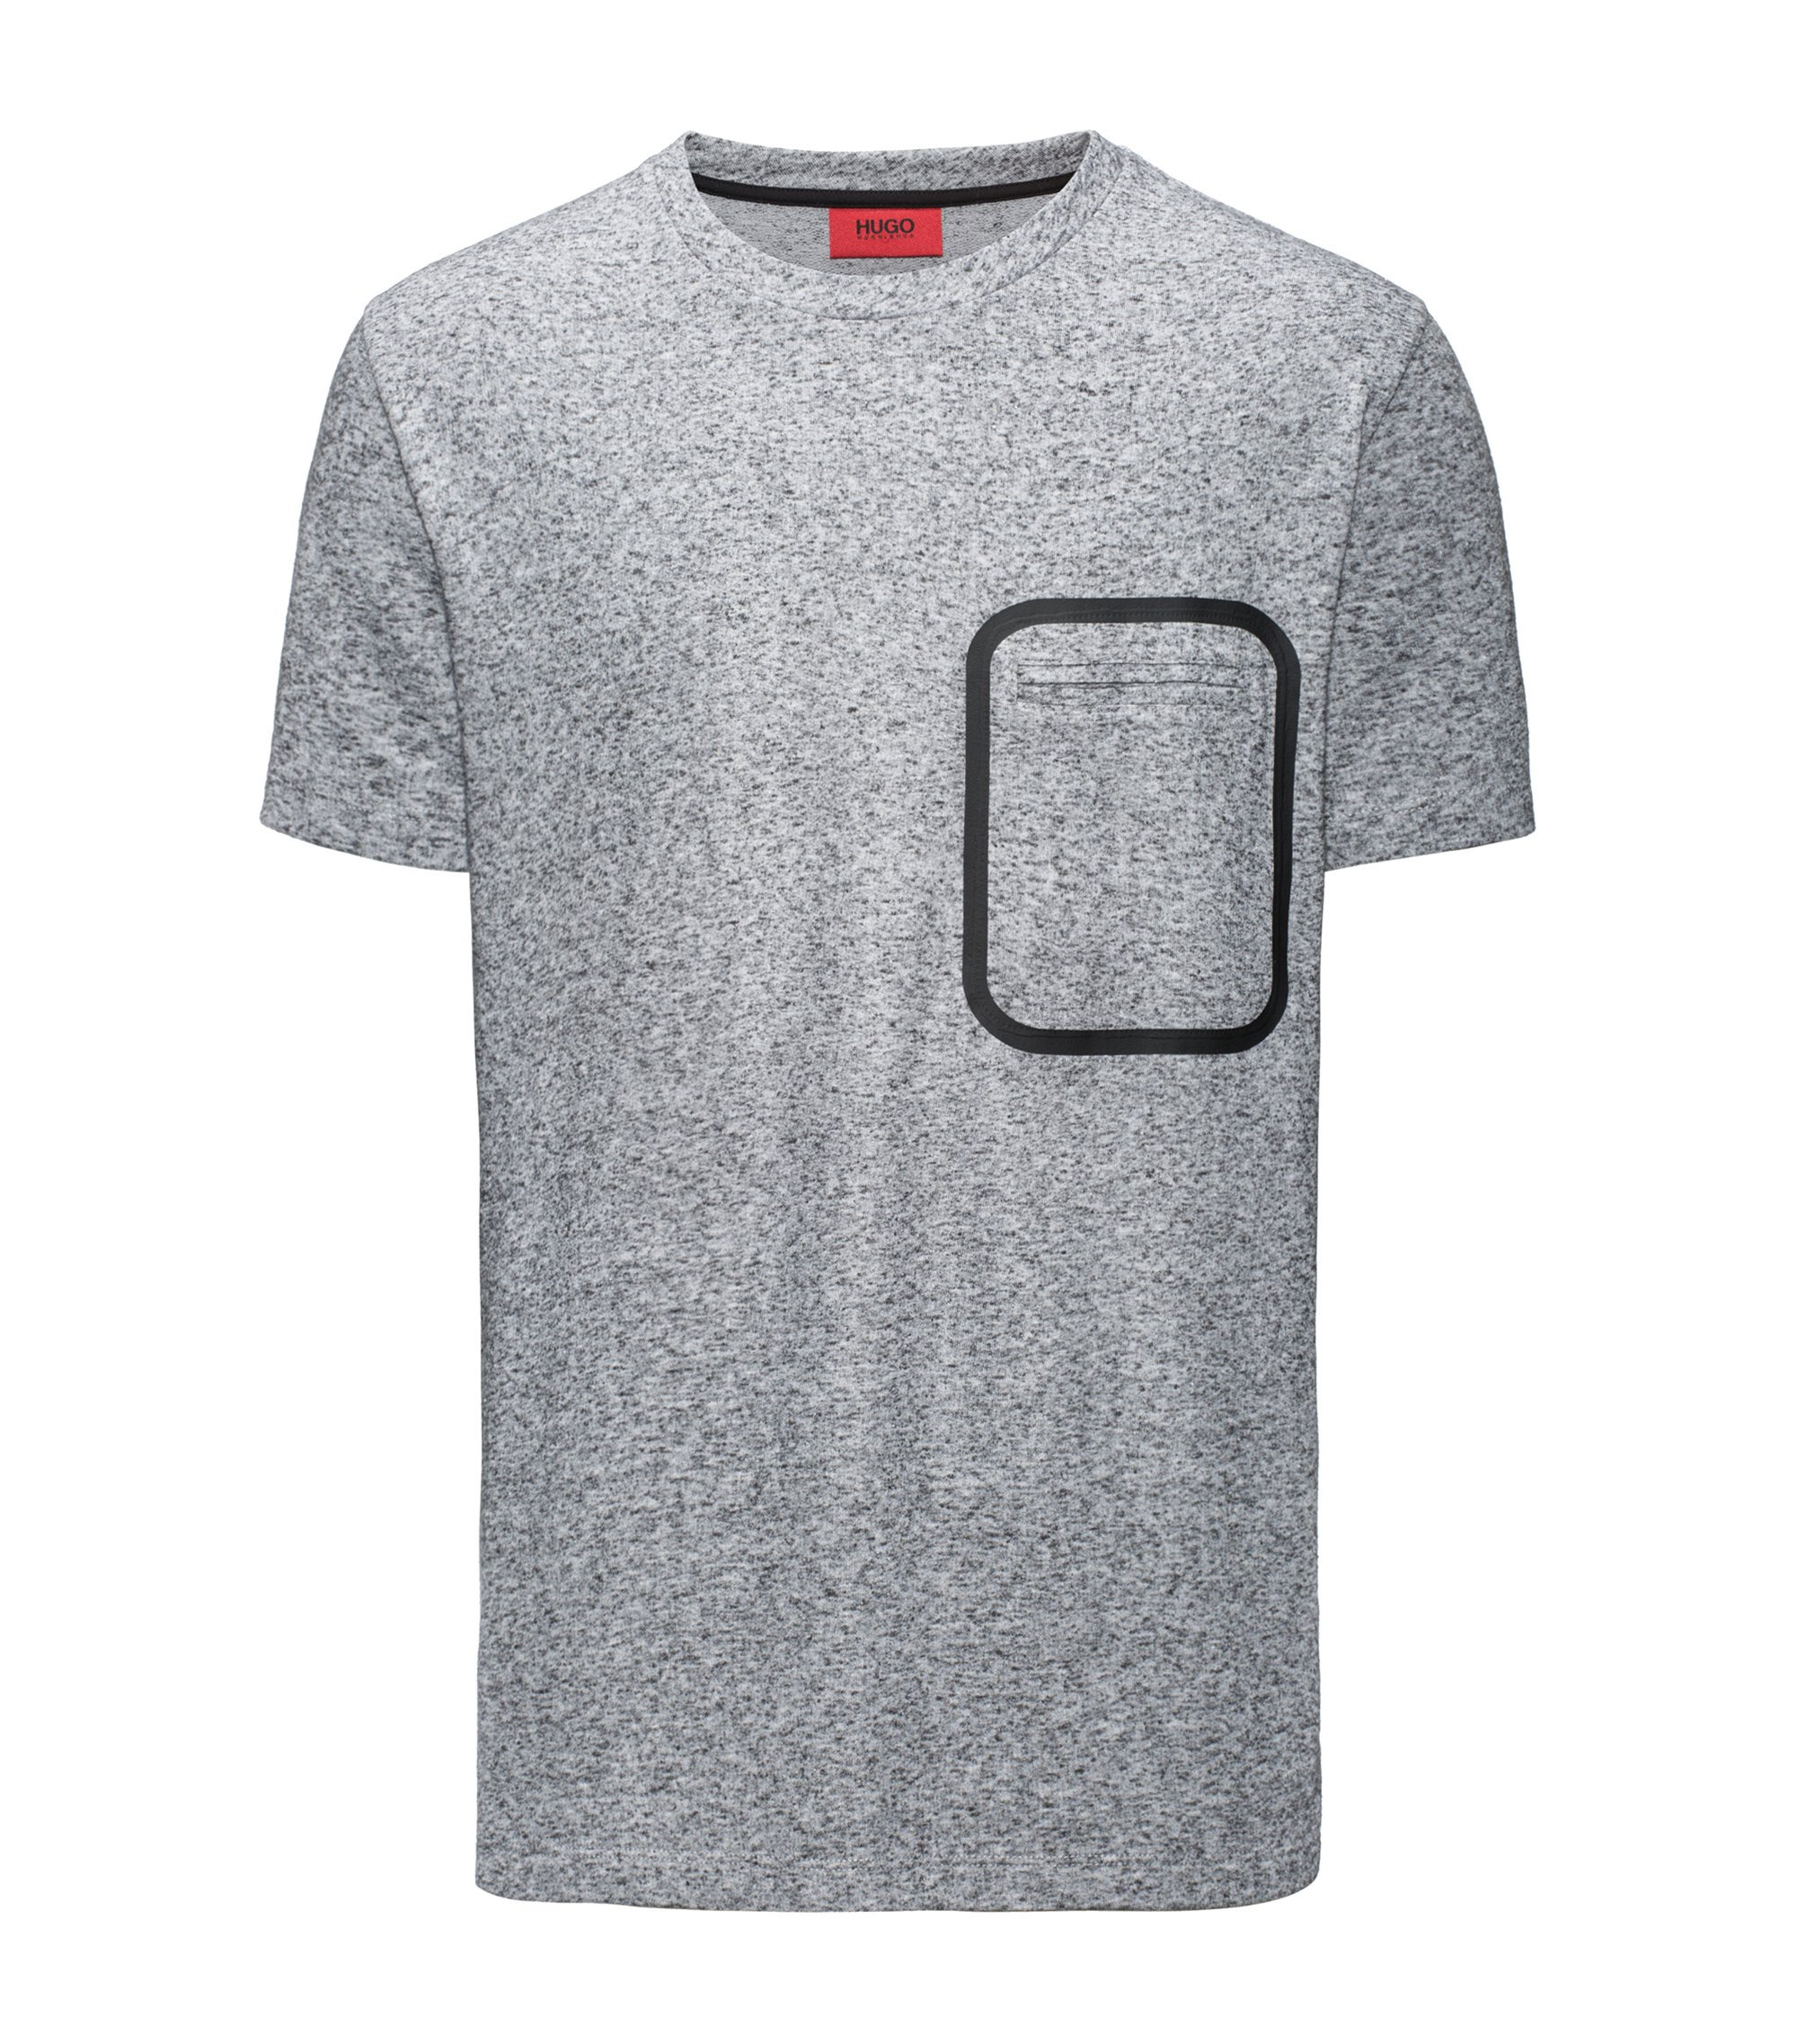 Oversized-fit T-shirt in mouliné French terry, Grey